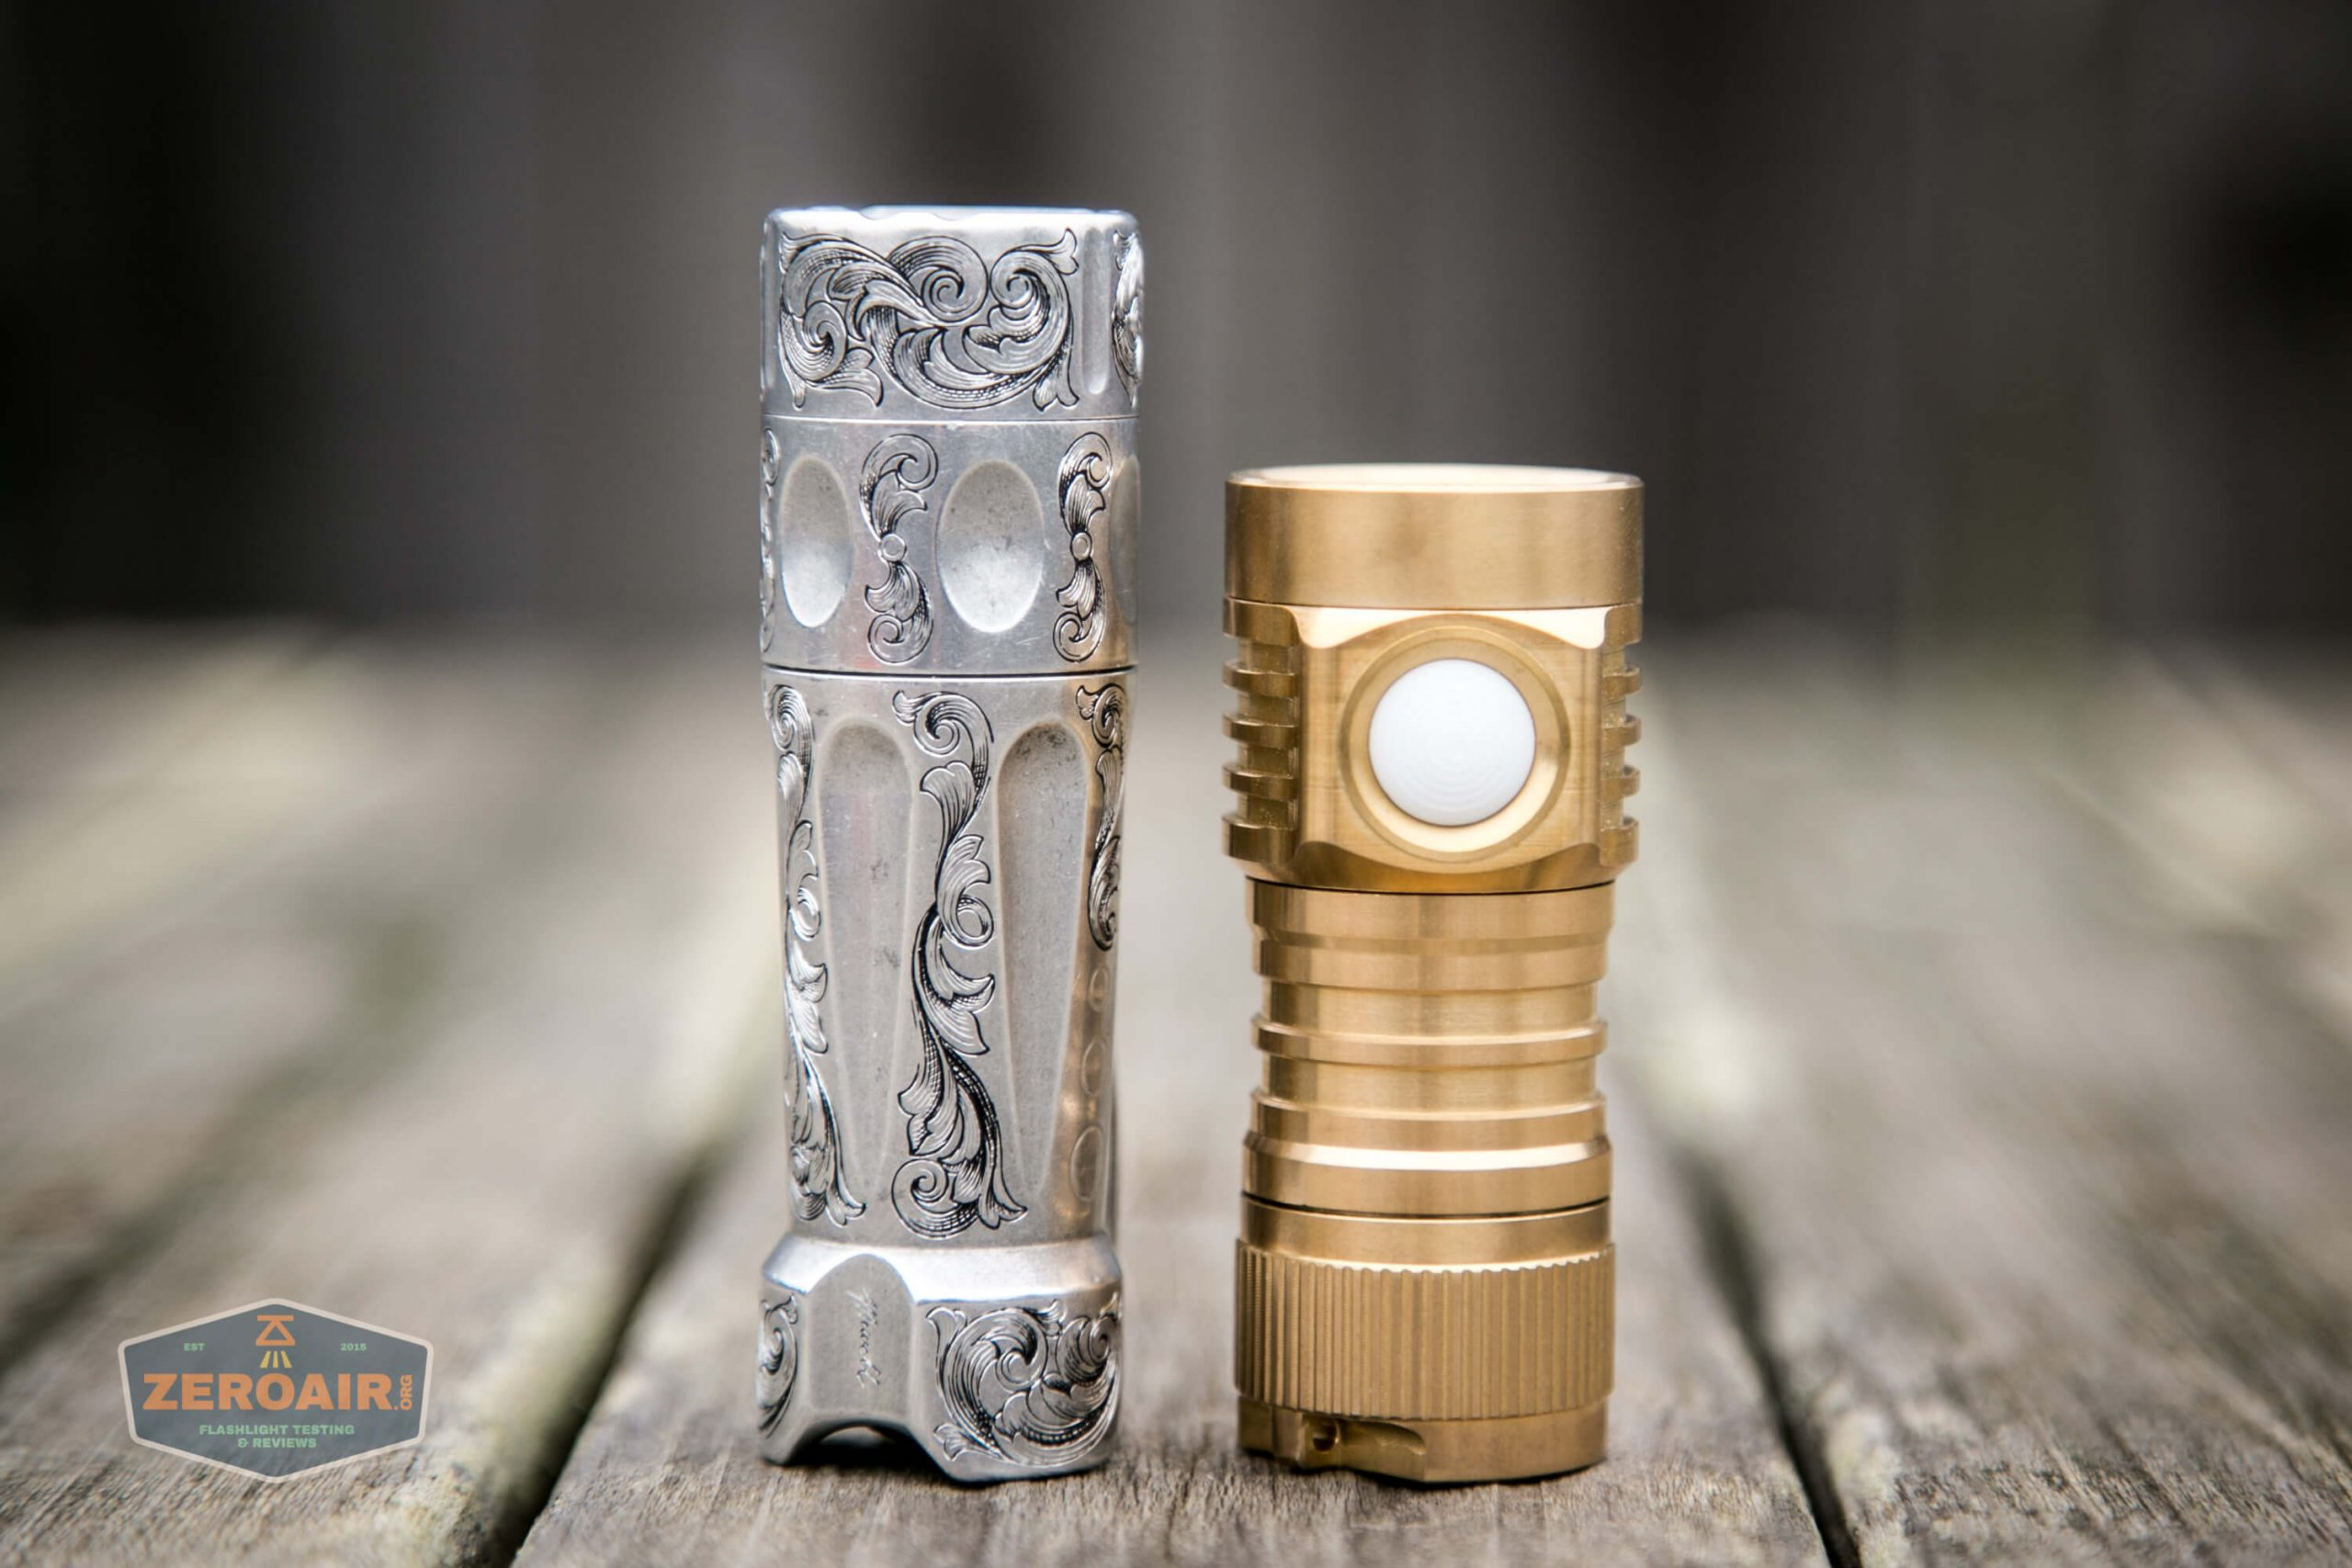 emisar d4v2 brass flashlight nichia e21a 4500K beside torchlab boss 35